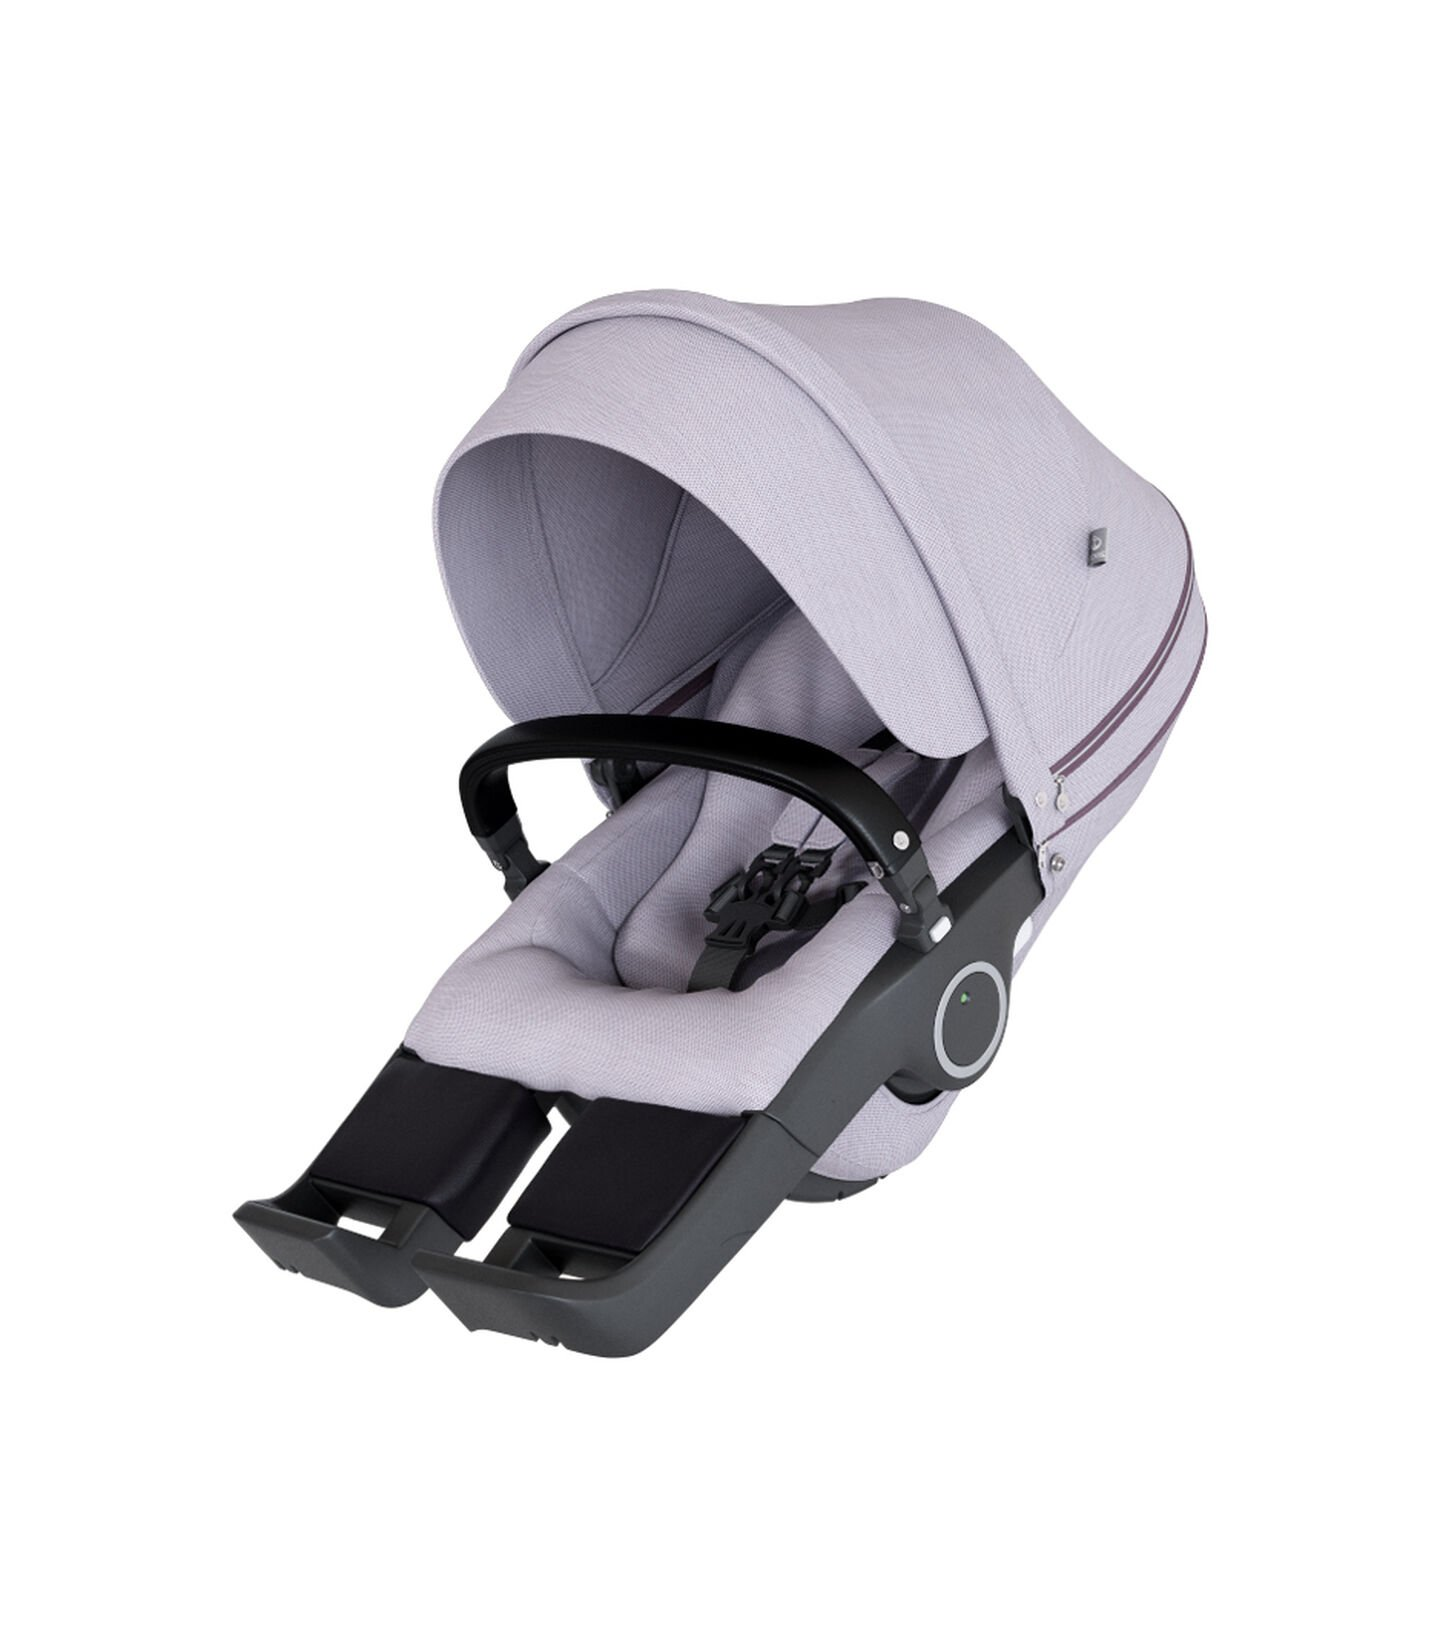 Stokke® Stroller Seat Brushed Lilac, Brushed Lilac, mainview